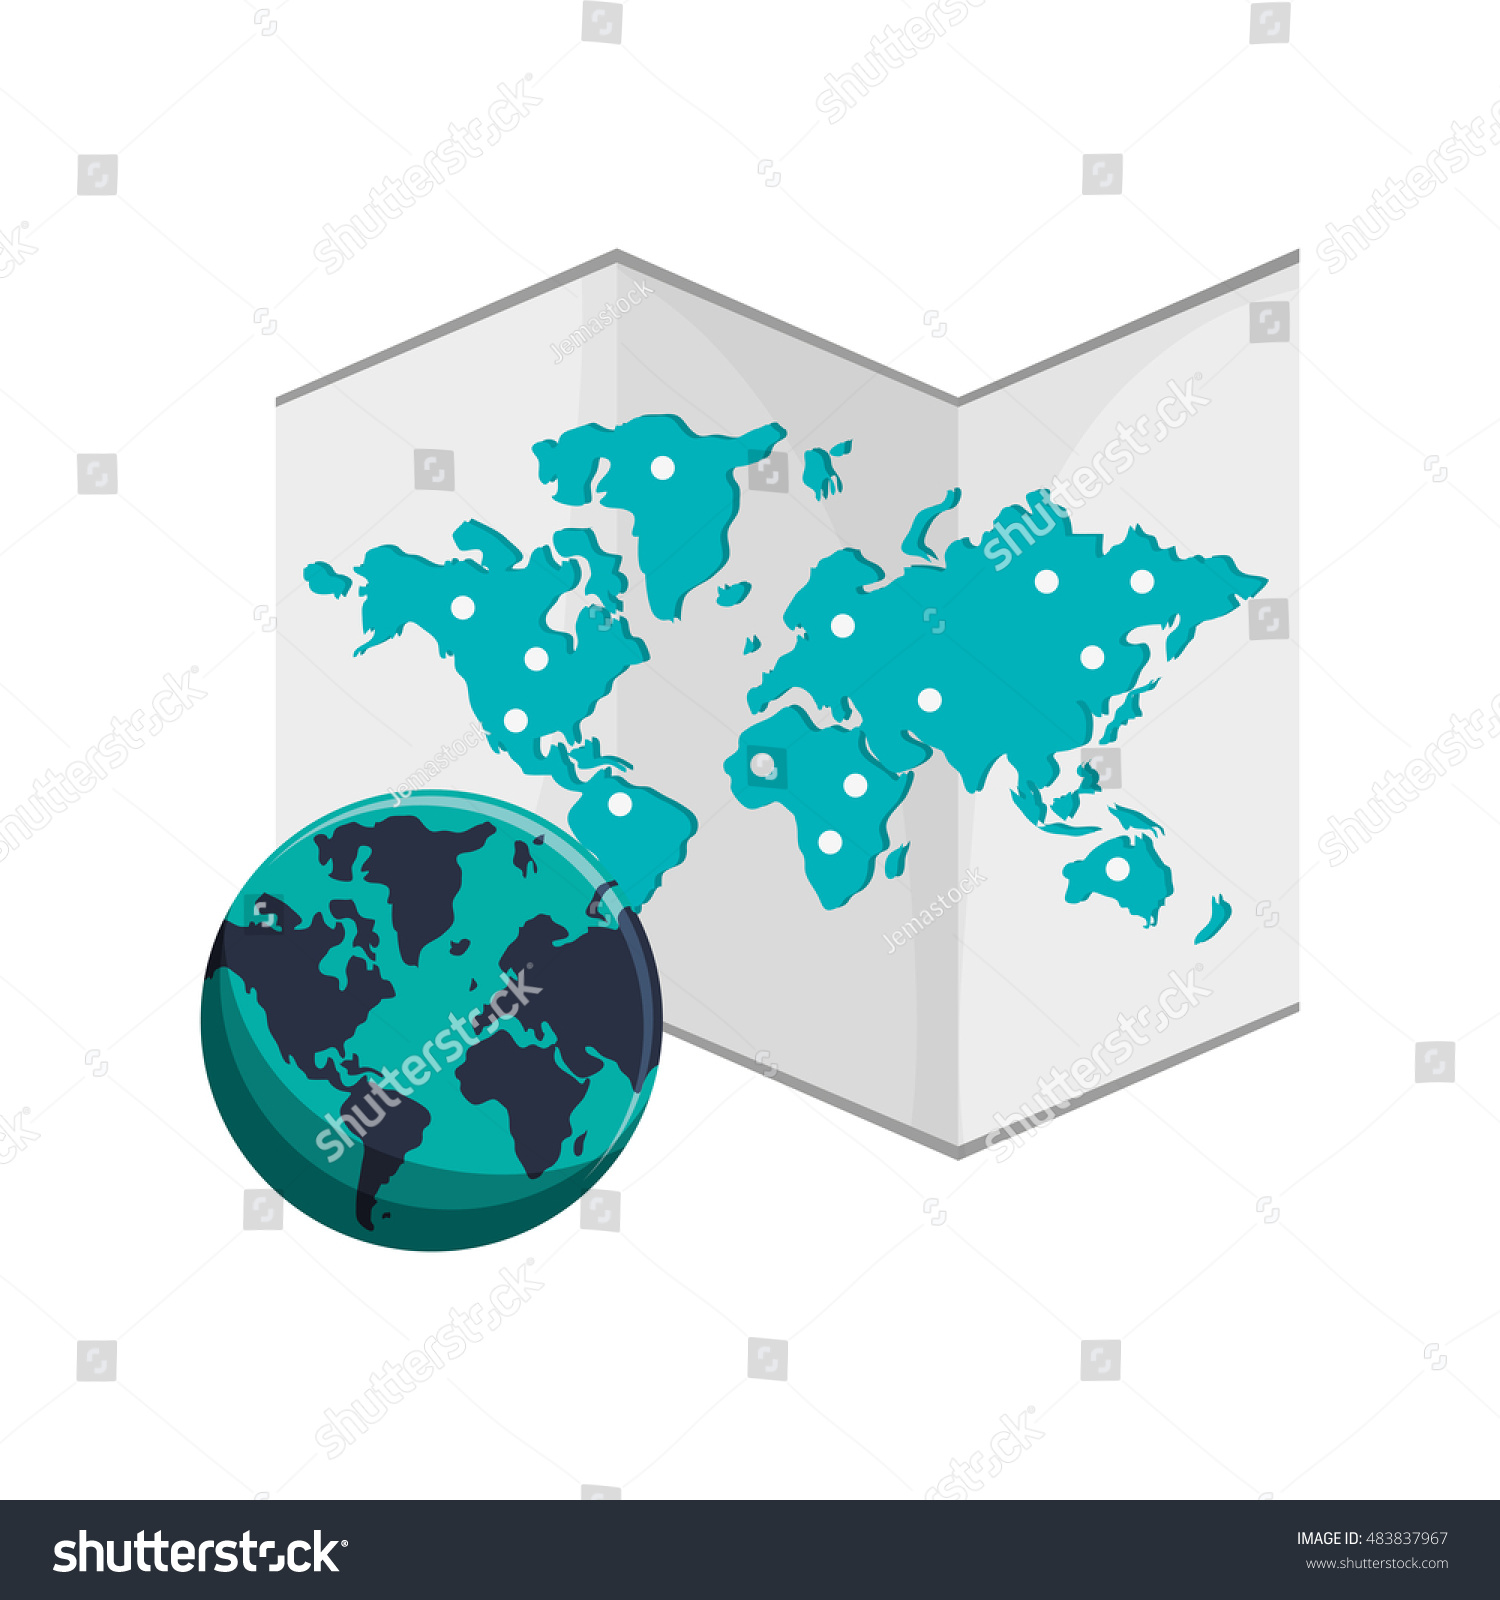 World map earth globe icon stock vector 483837967 shutterstock gumiabroncs Gallery